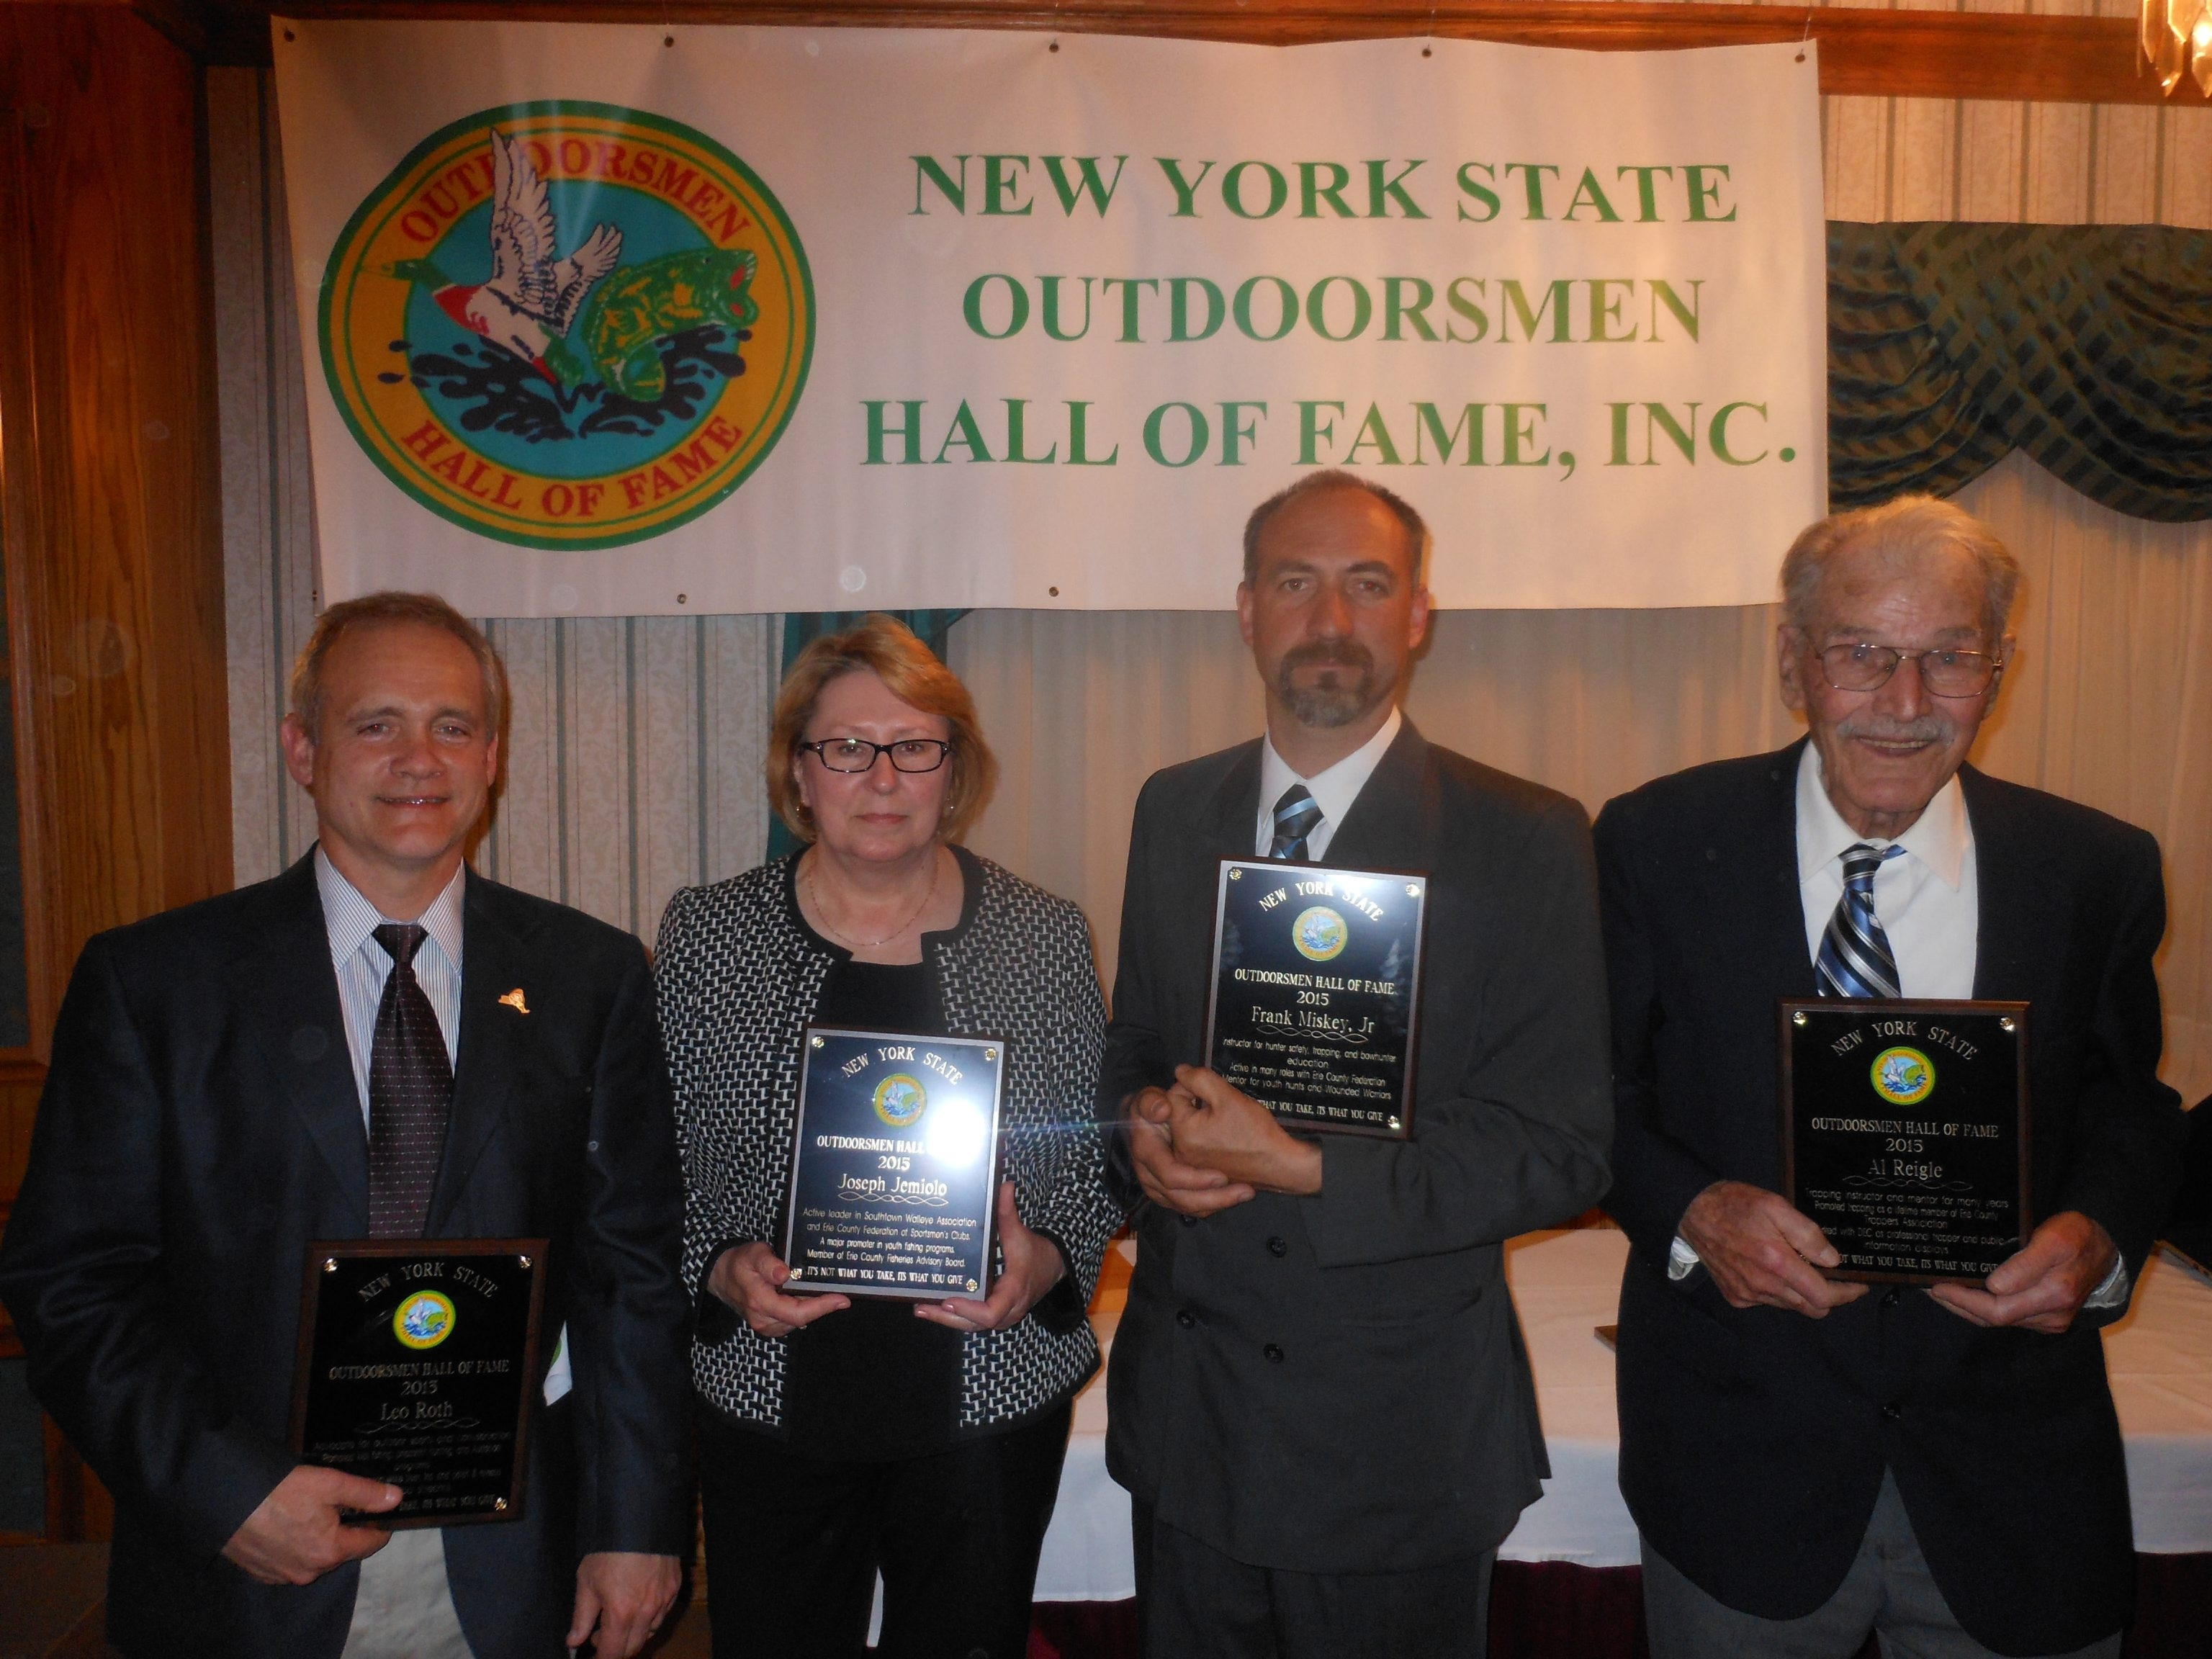 Leo Roth, Margaret Jemiolo, widow of Joseph Jemiolo Jr., Frank Miskey Jr. and Al Reigle accepted inductions into the New York State Outdoorsmen Hall of Fame on April 25.